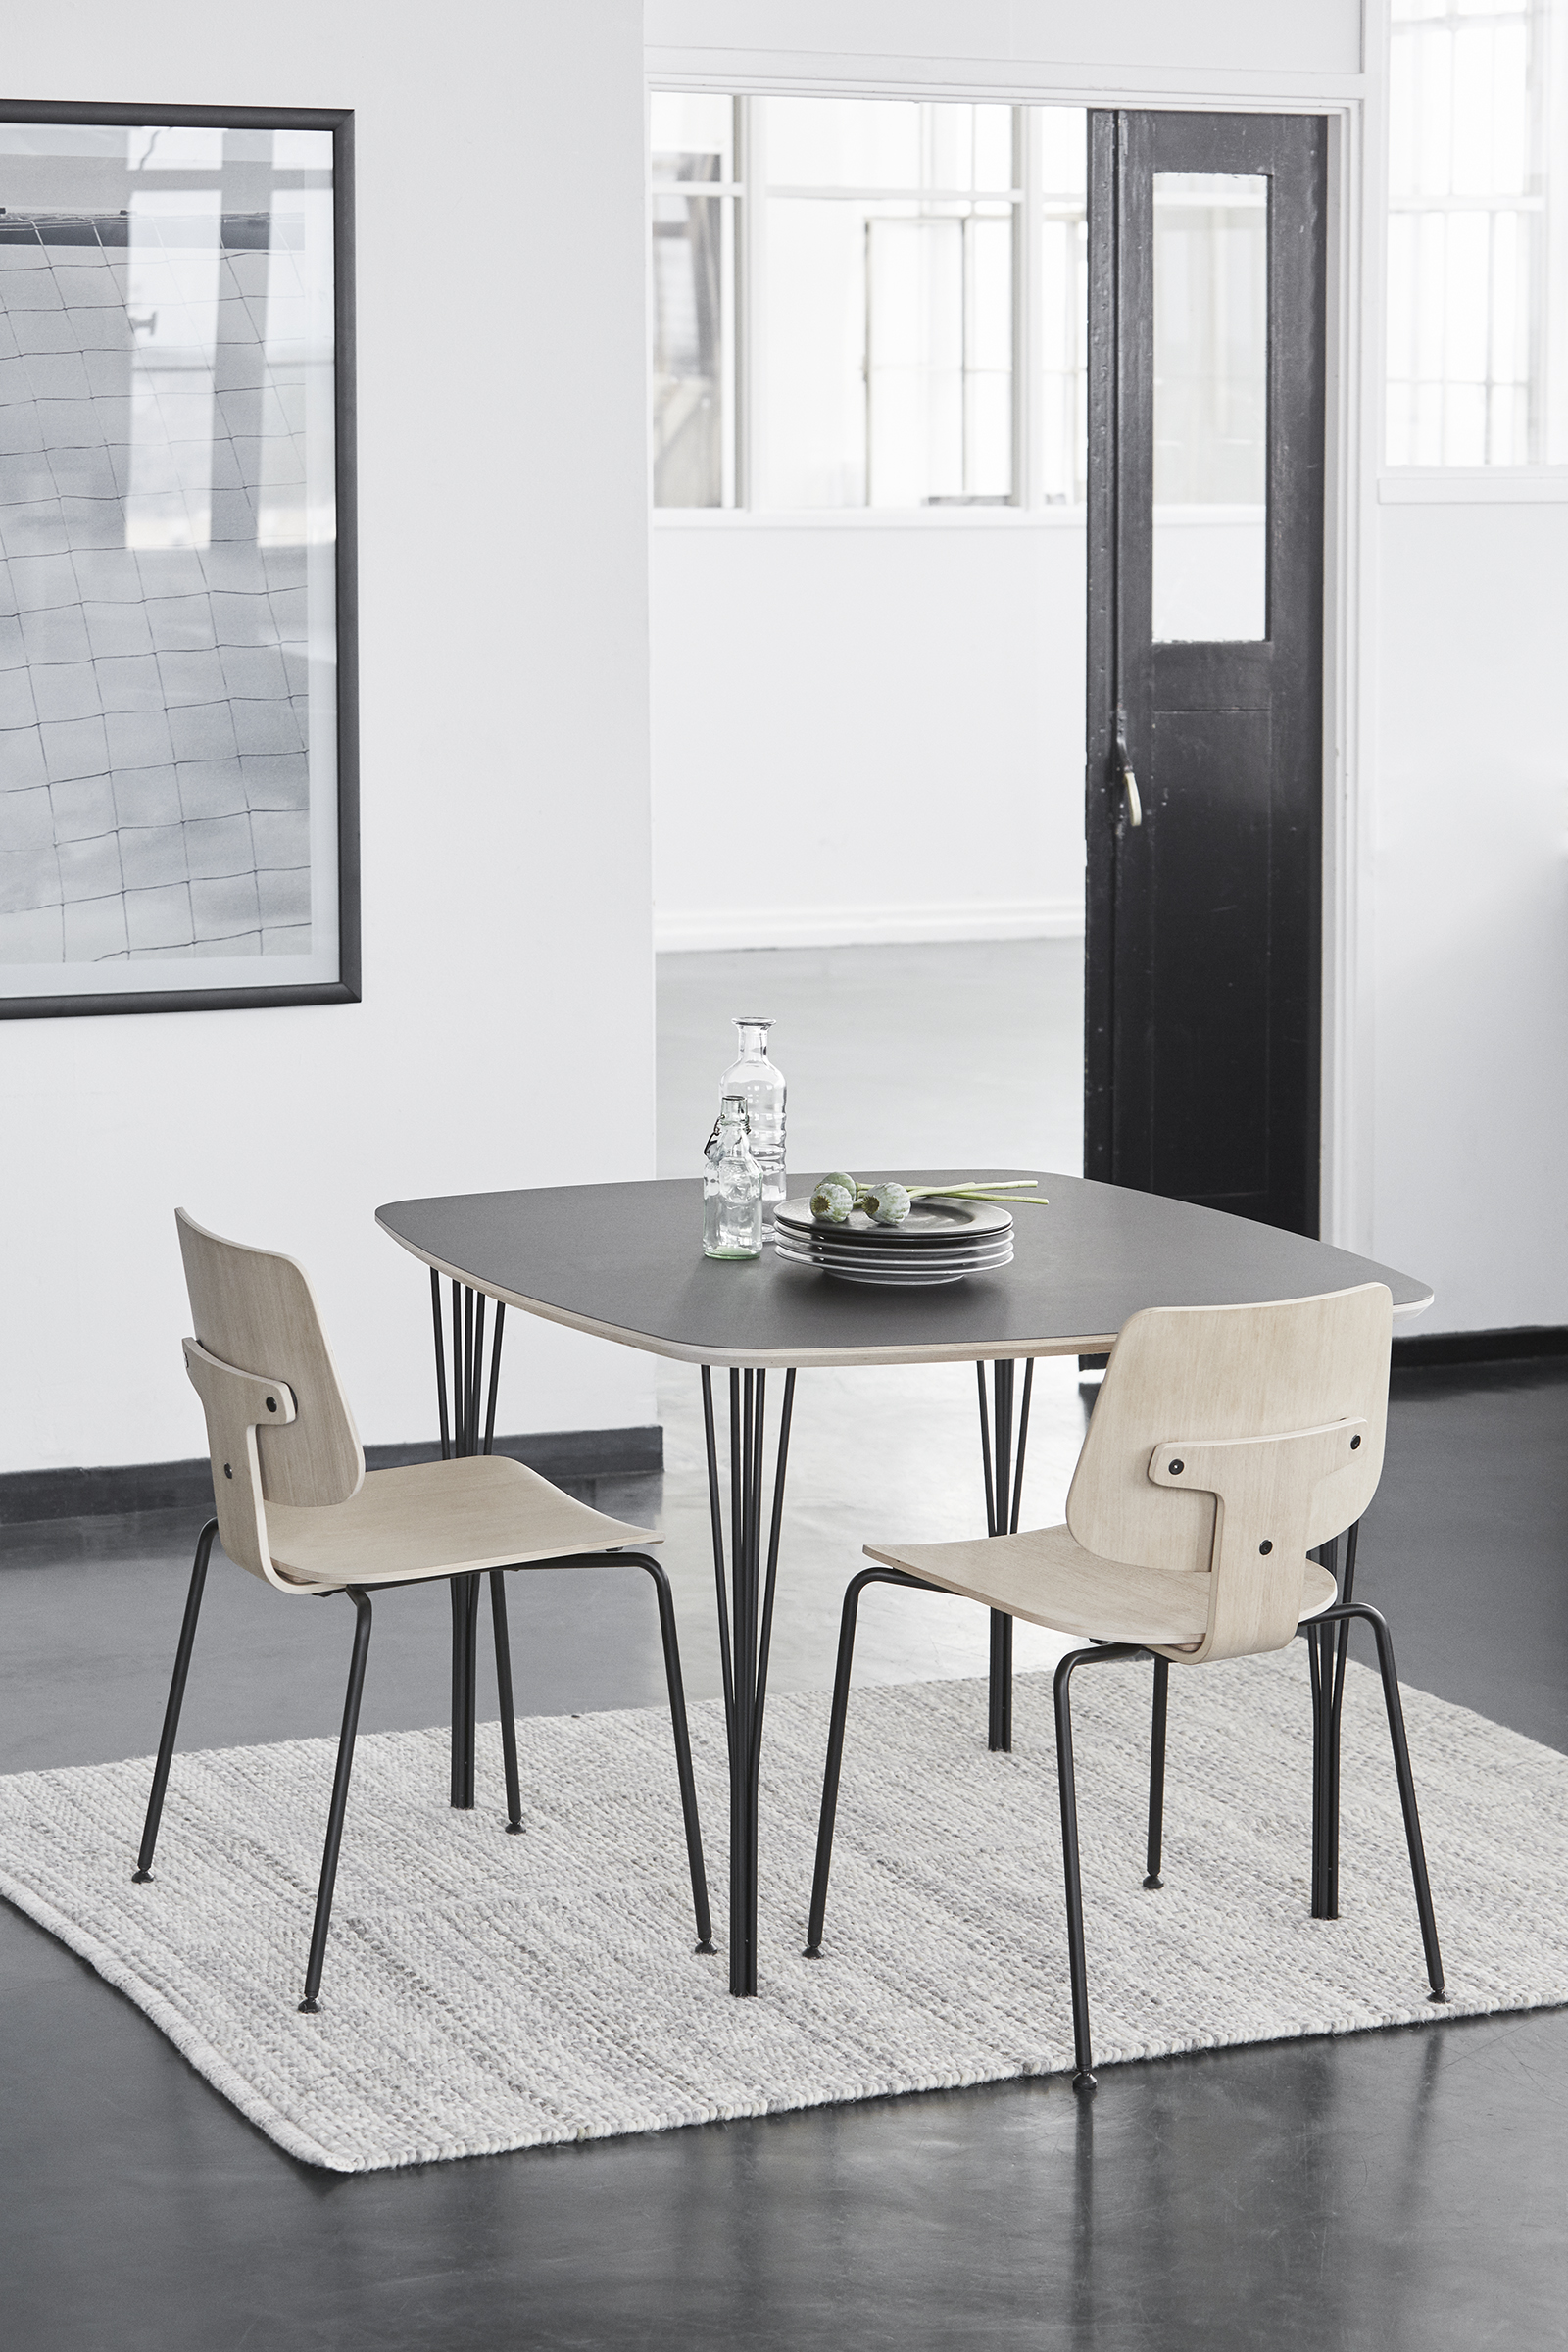 Haslev Note chair